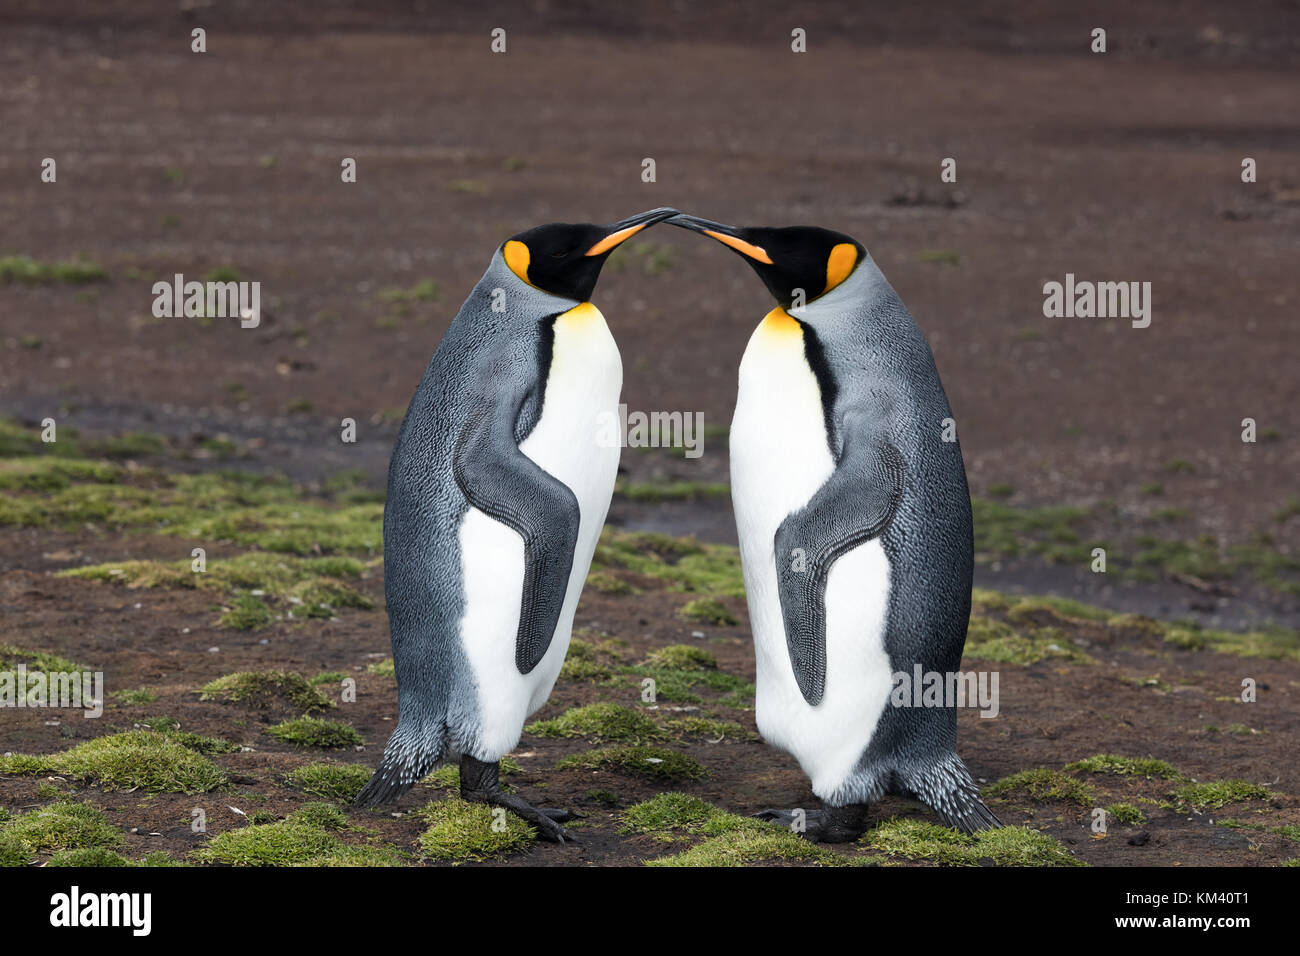 King penguins on Volunteer Beach, Falkland Islands - Stock Image